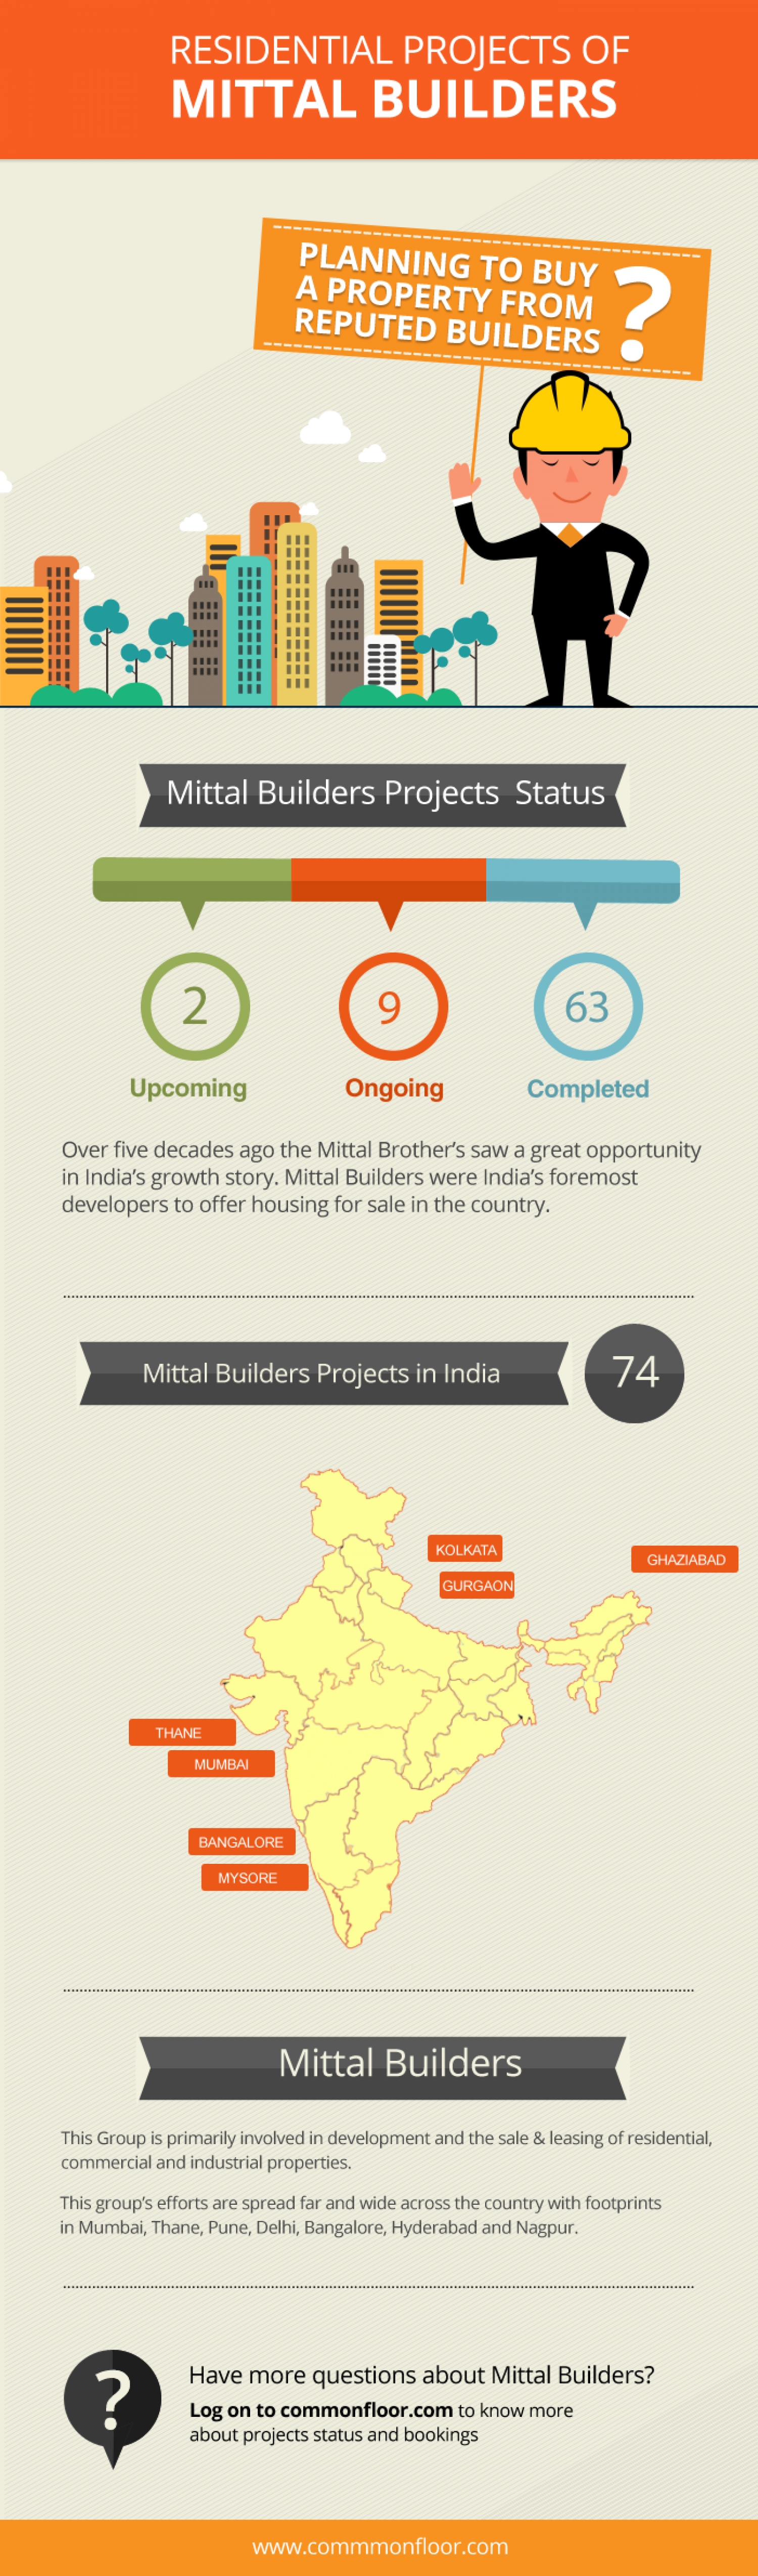 Residential Projects of Mittal Builders Across India Infographic